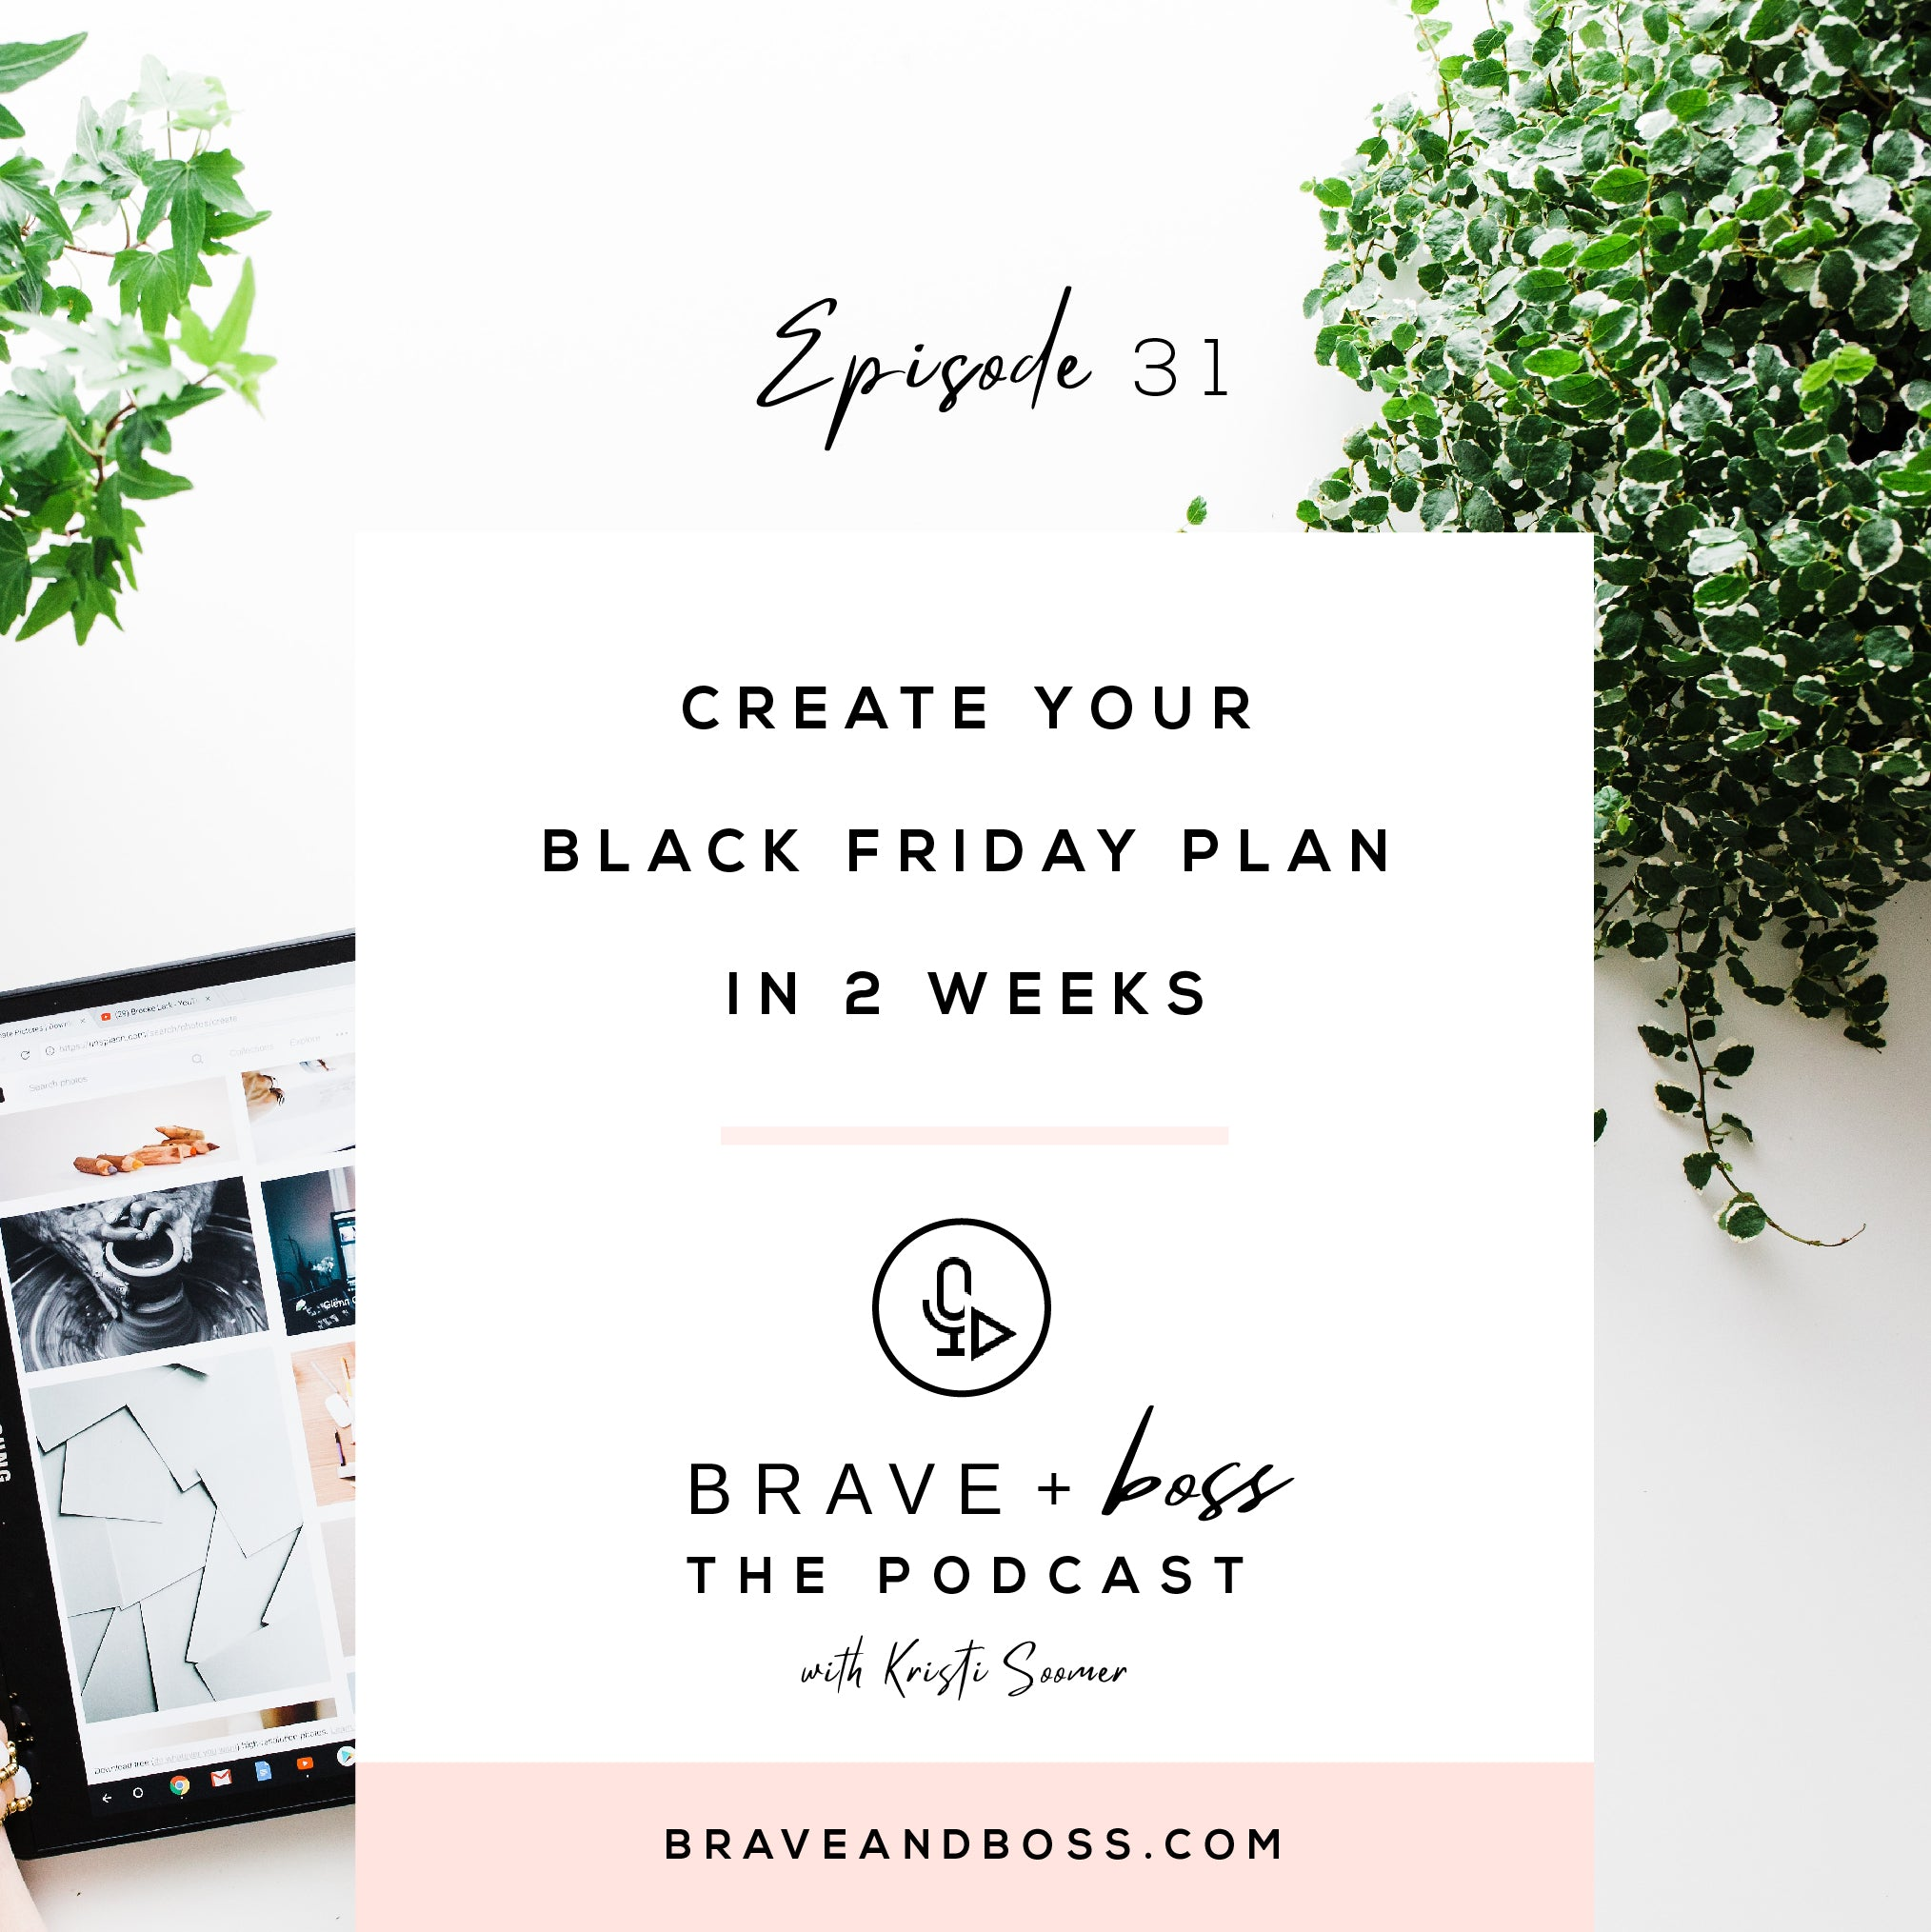 Create your Black Friday Plan in 2 Weeks